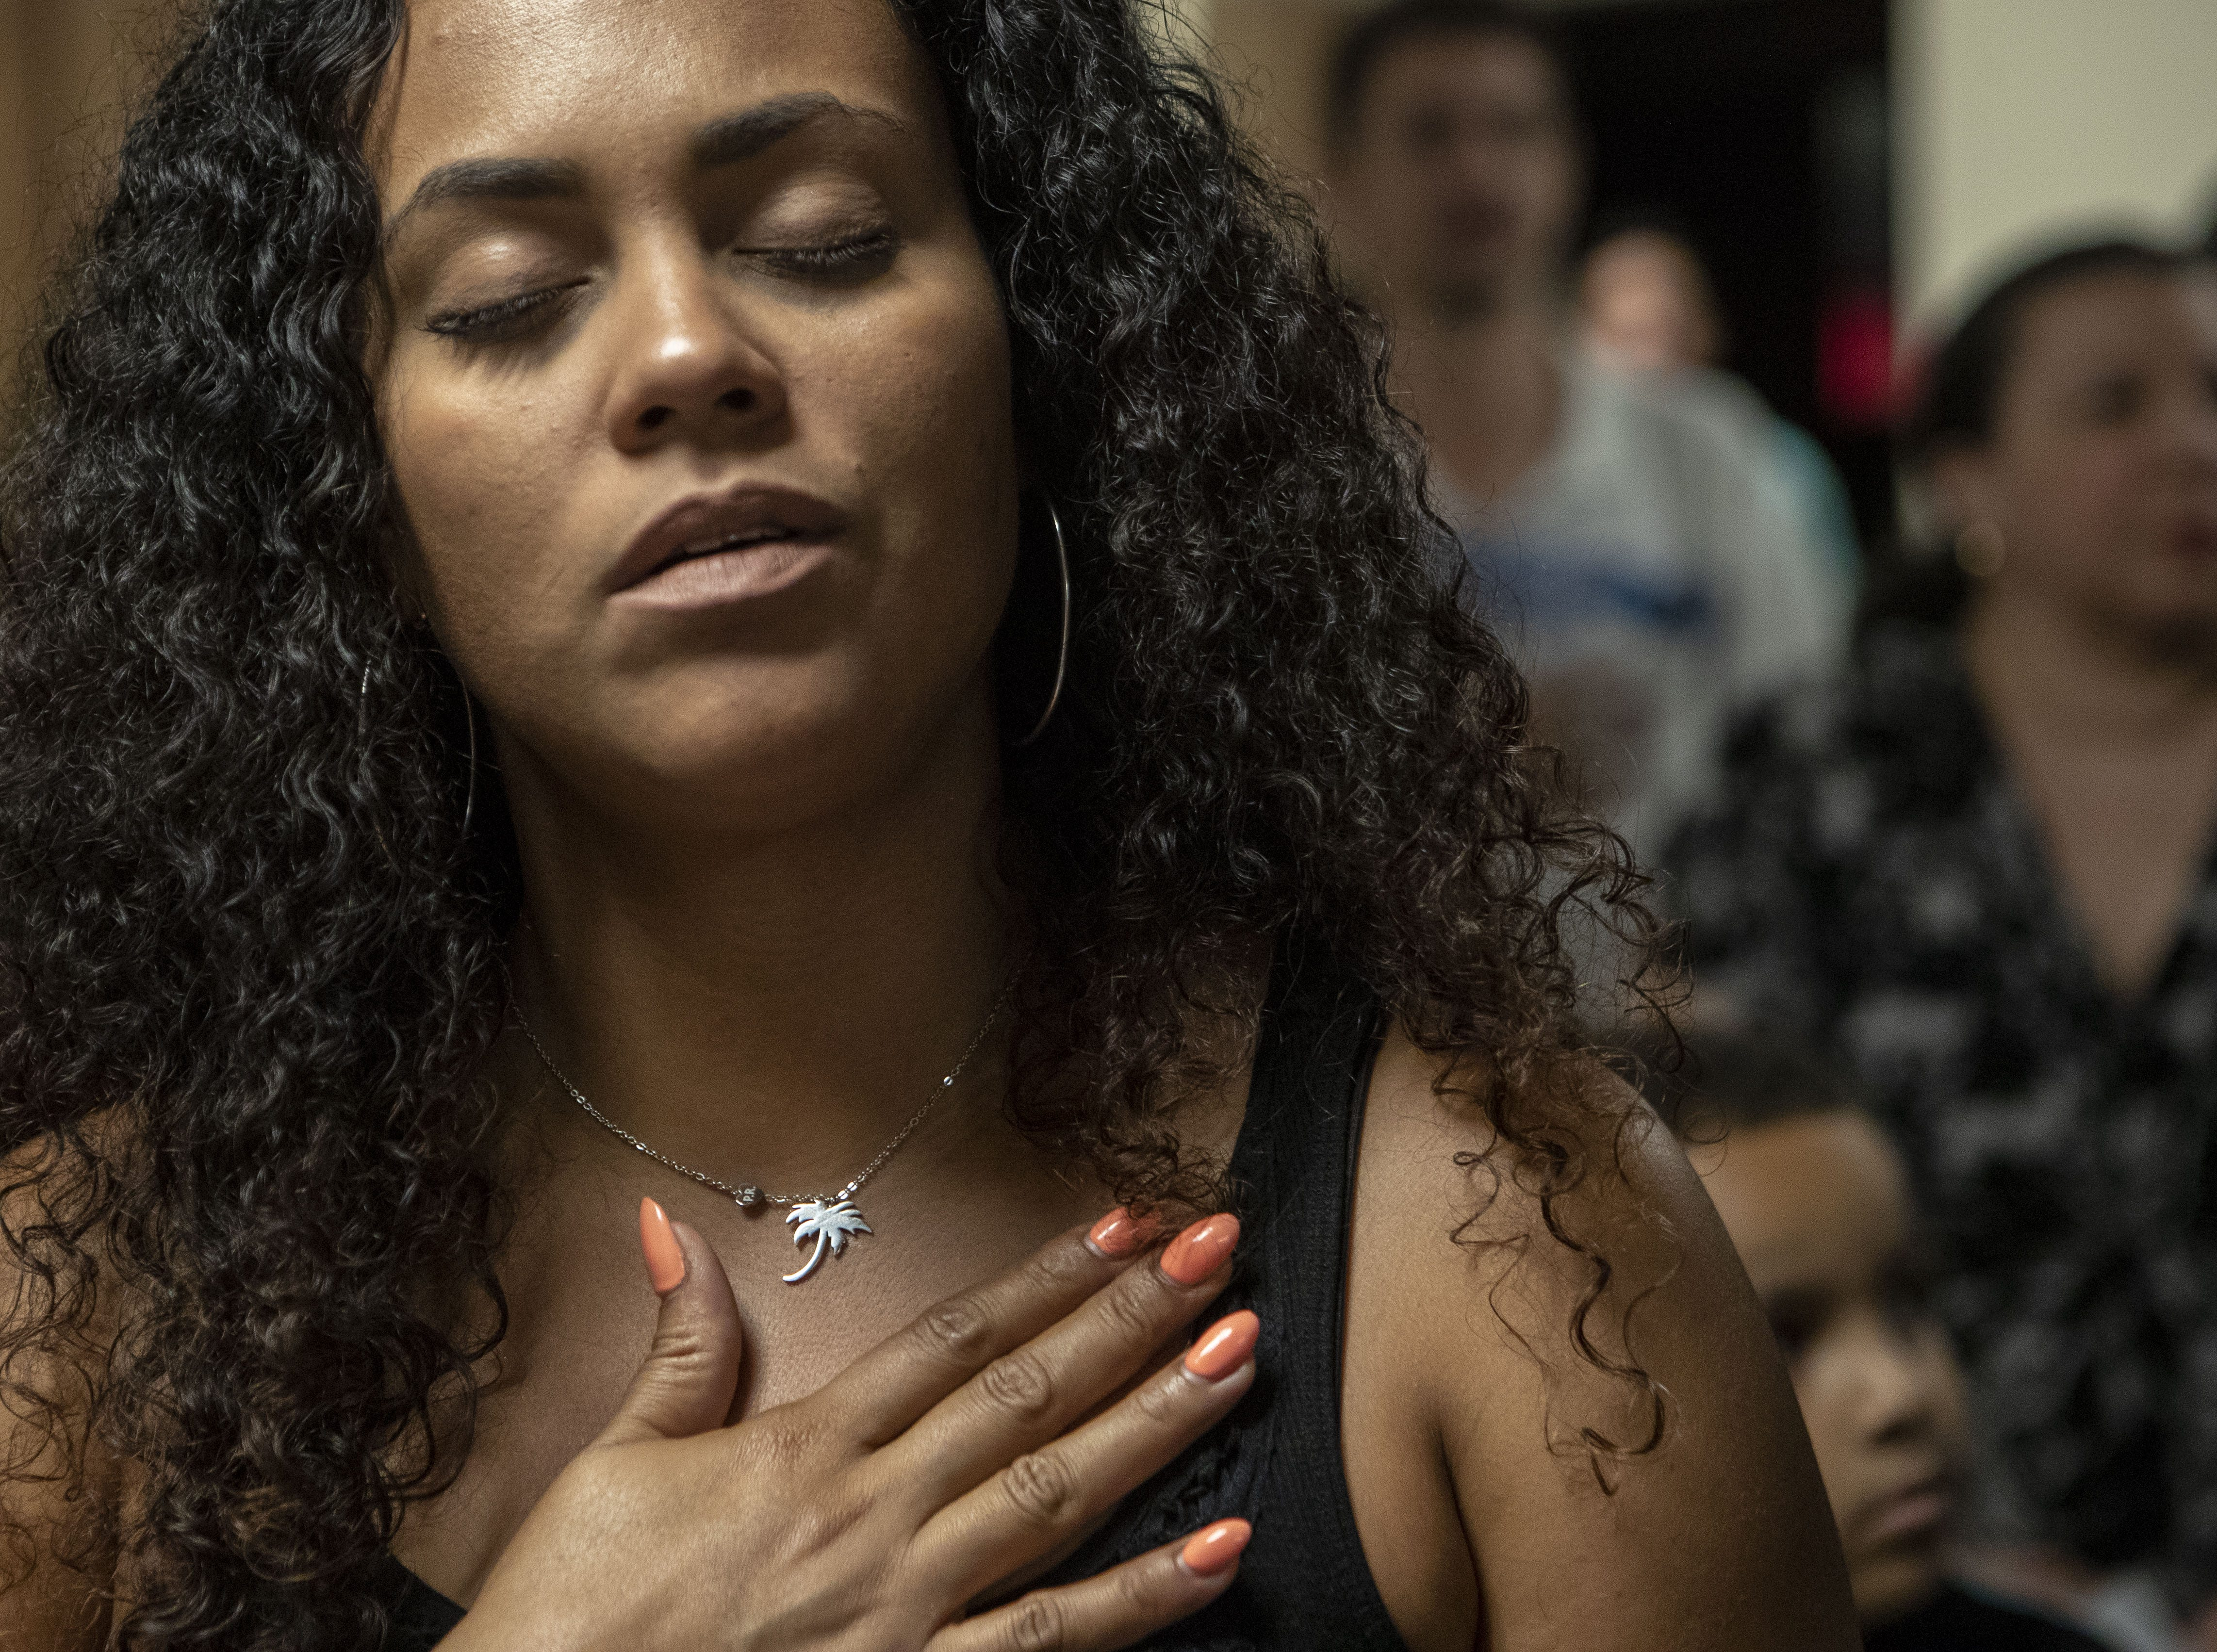 Germaine Ortiz, 33, from Arroyo, Puerto Rico, marks the one-year anniversary of Hurricane Maria during a service in Phoenix. The service remembered the nearly 3,000 people who died in the hurricane's aftermath and honored survivors, including those who lived through the storm, those forced to abandon the island, and those on the mainland cut off from relatives and friends.